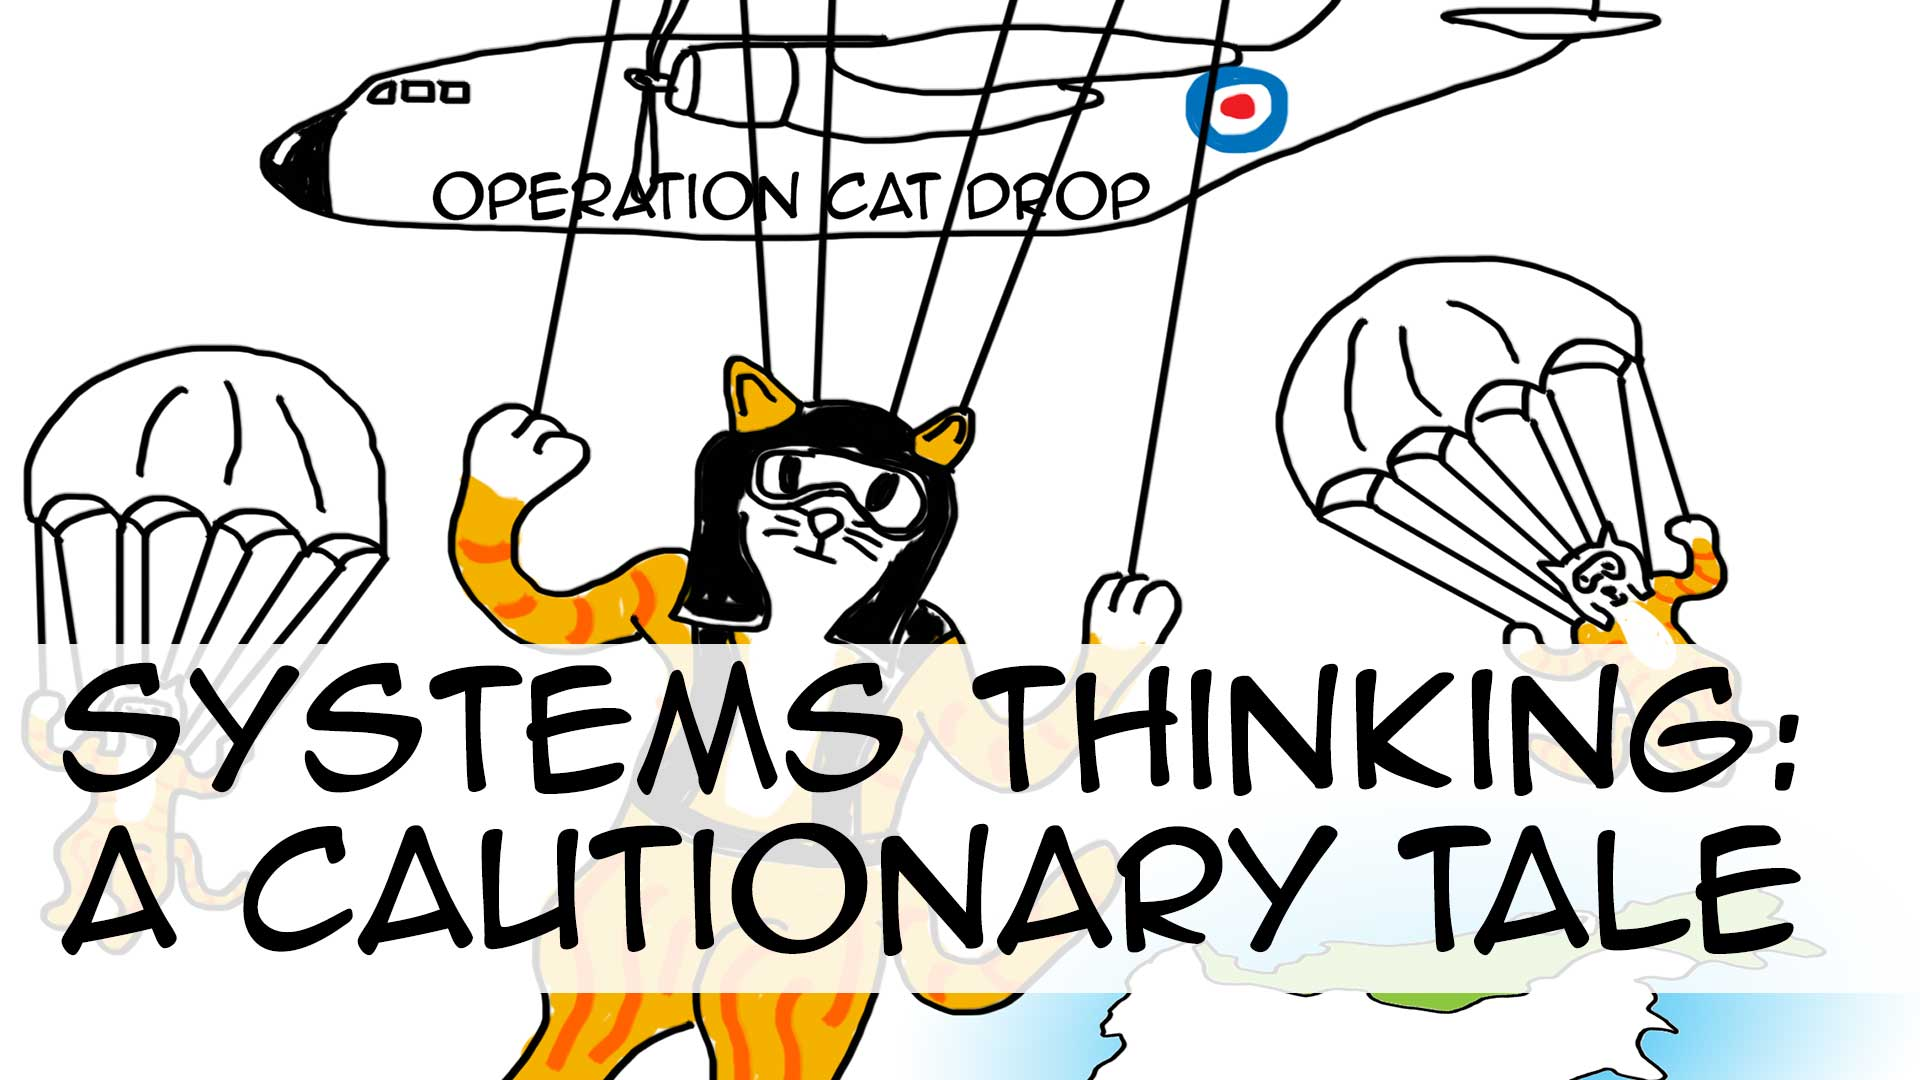 Systems thinking: A cautionary tale